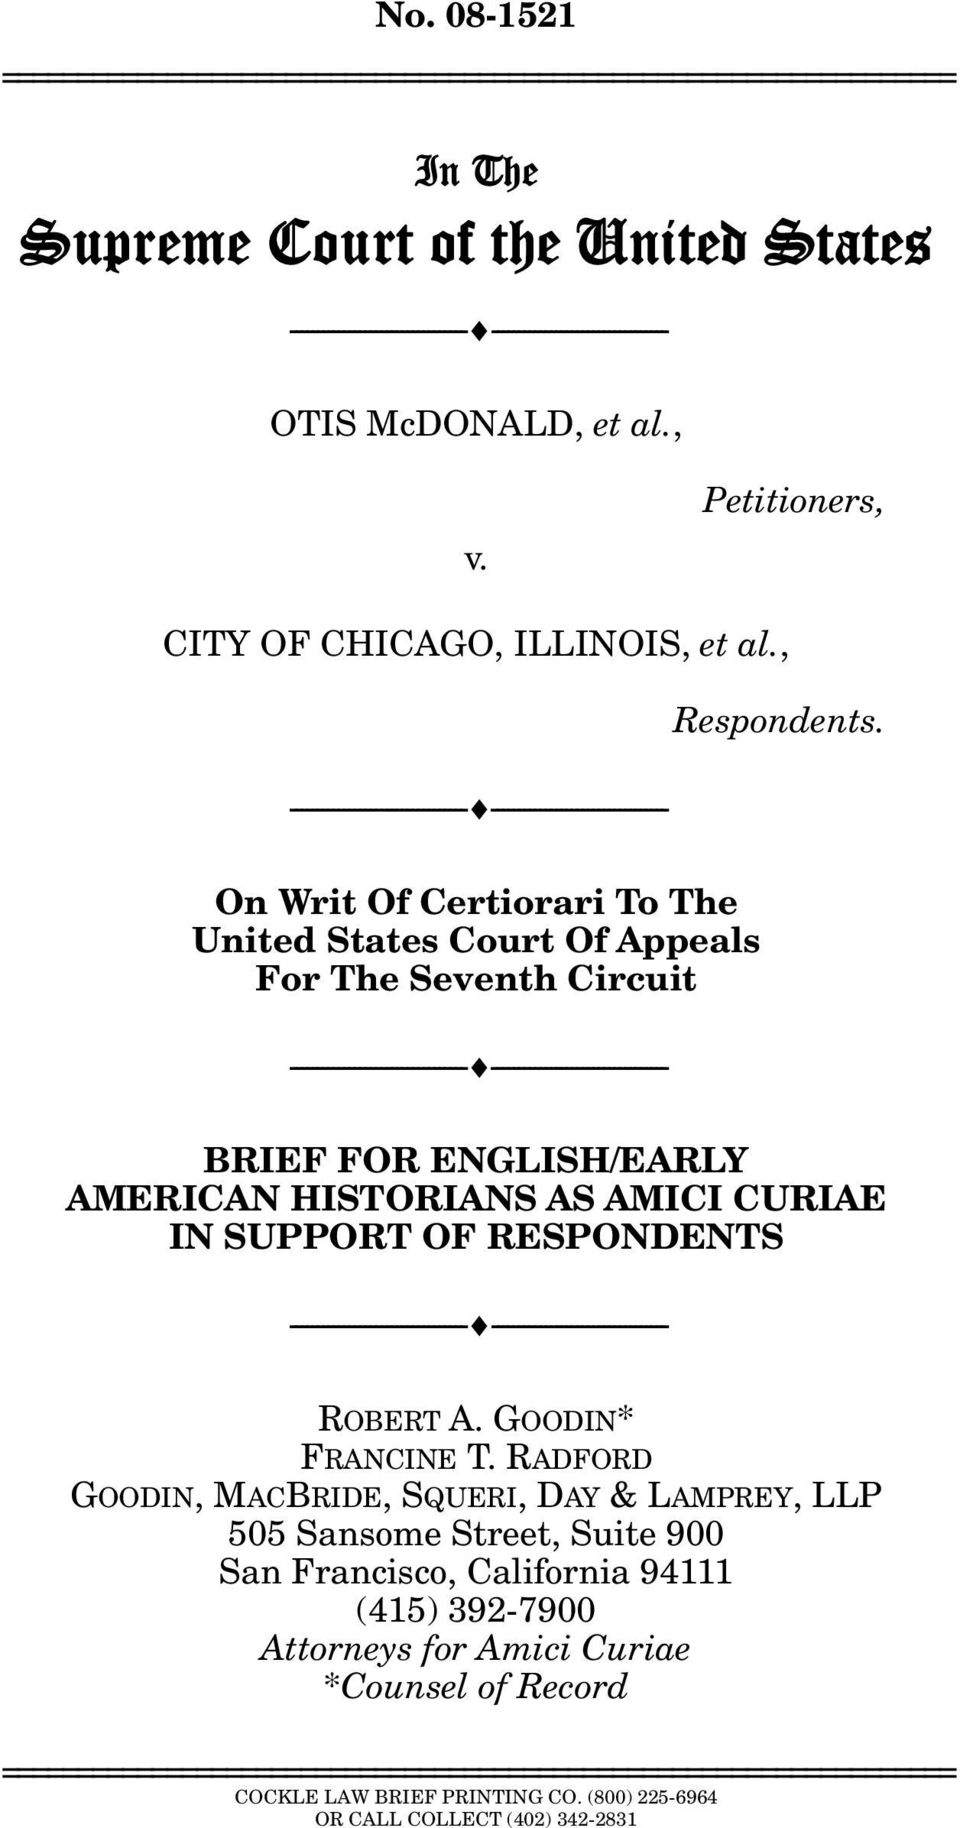 , --------------------------------- --------------------------------- On Writ Of Certiorari To The United States Court Of Appeals For The Seventh Circuit ---------------------------------